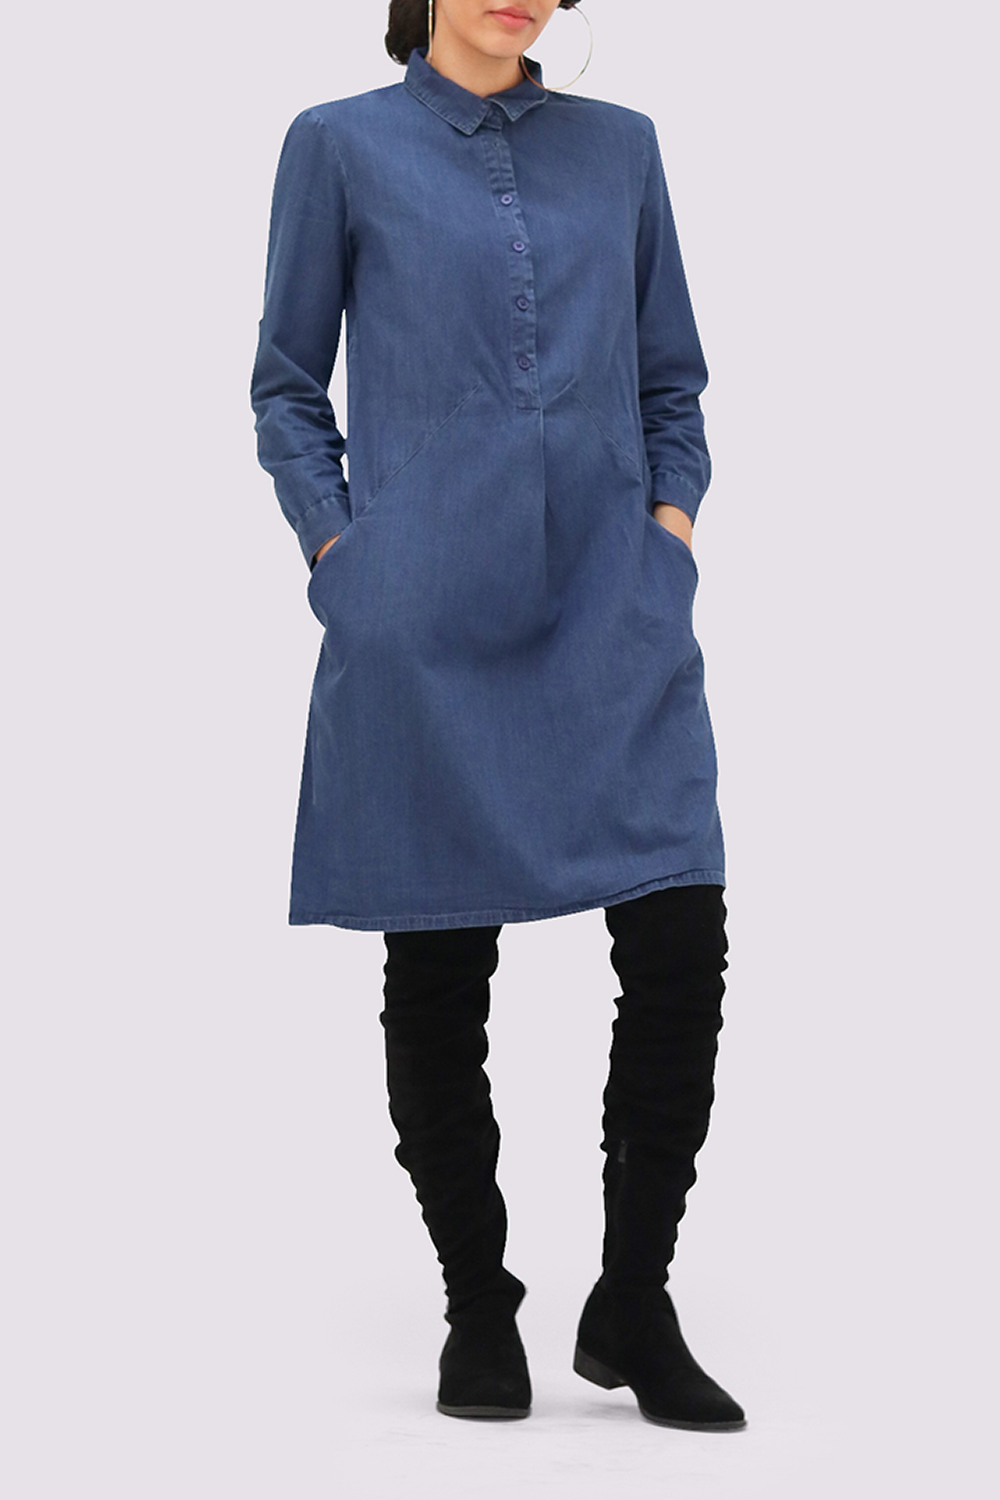 Bibico Emilia Denim Dress